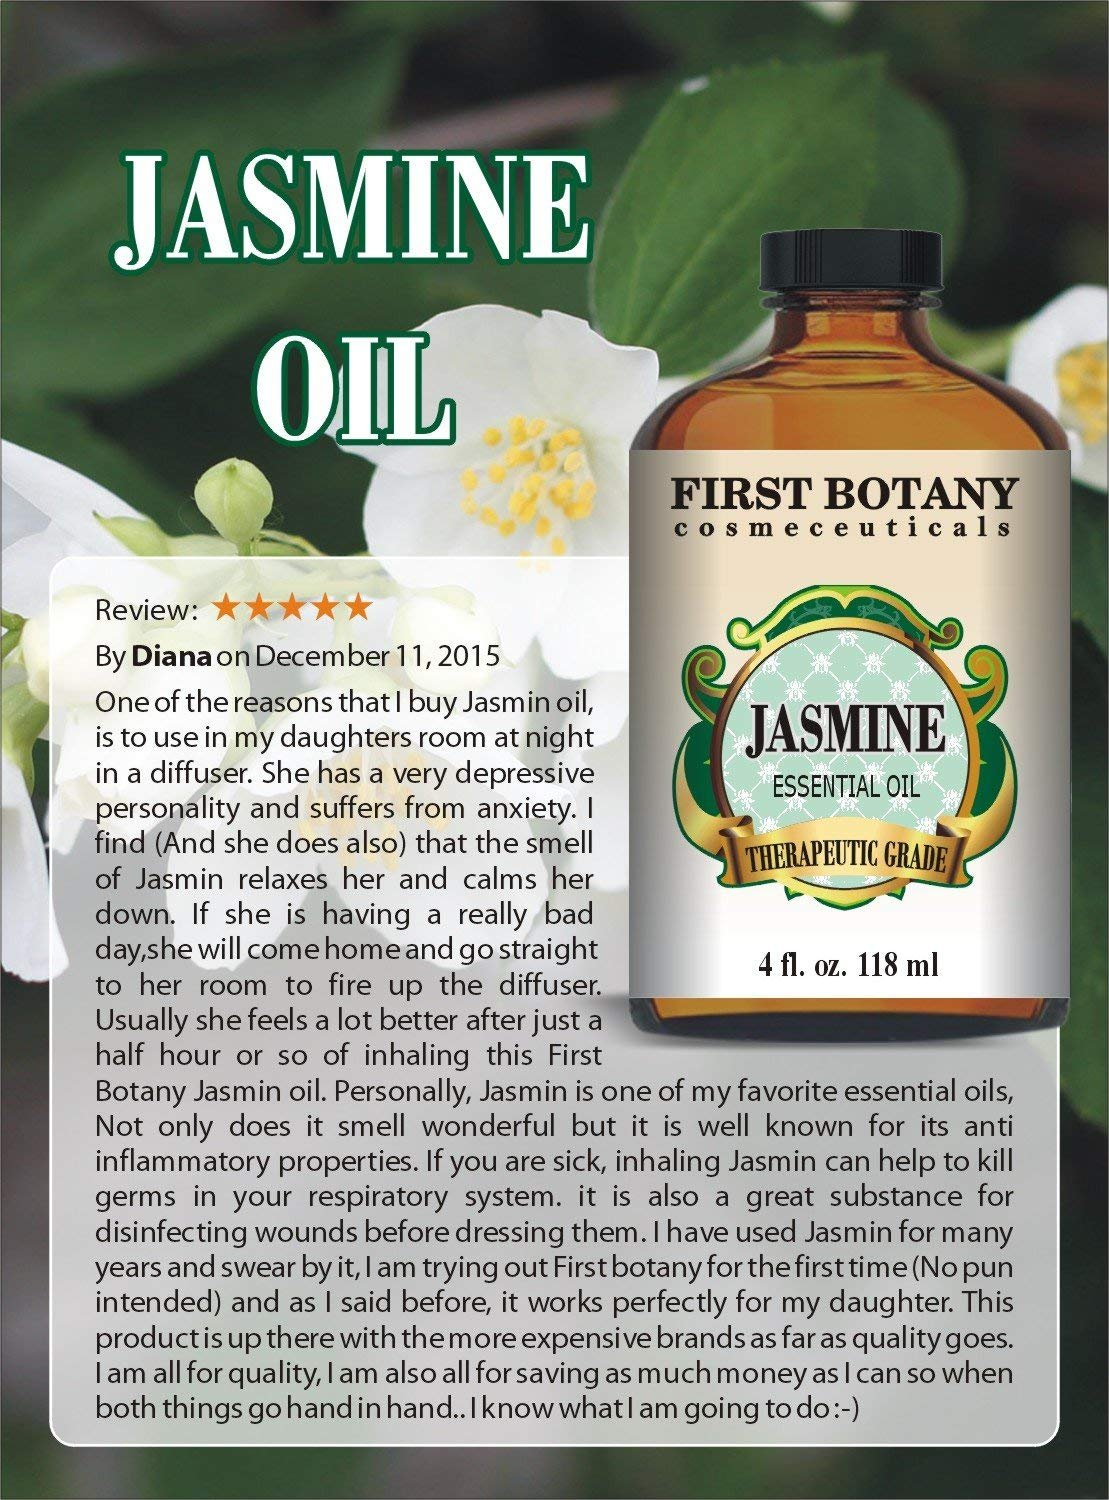 Jasmine Oil 4 fl. oz. With a Glass Dropper - Premium Quality & Therapeutic Grade - Ideal for Aromatherapy & Maintaining Healthy Skin